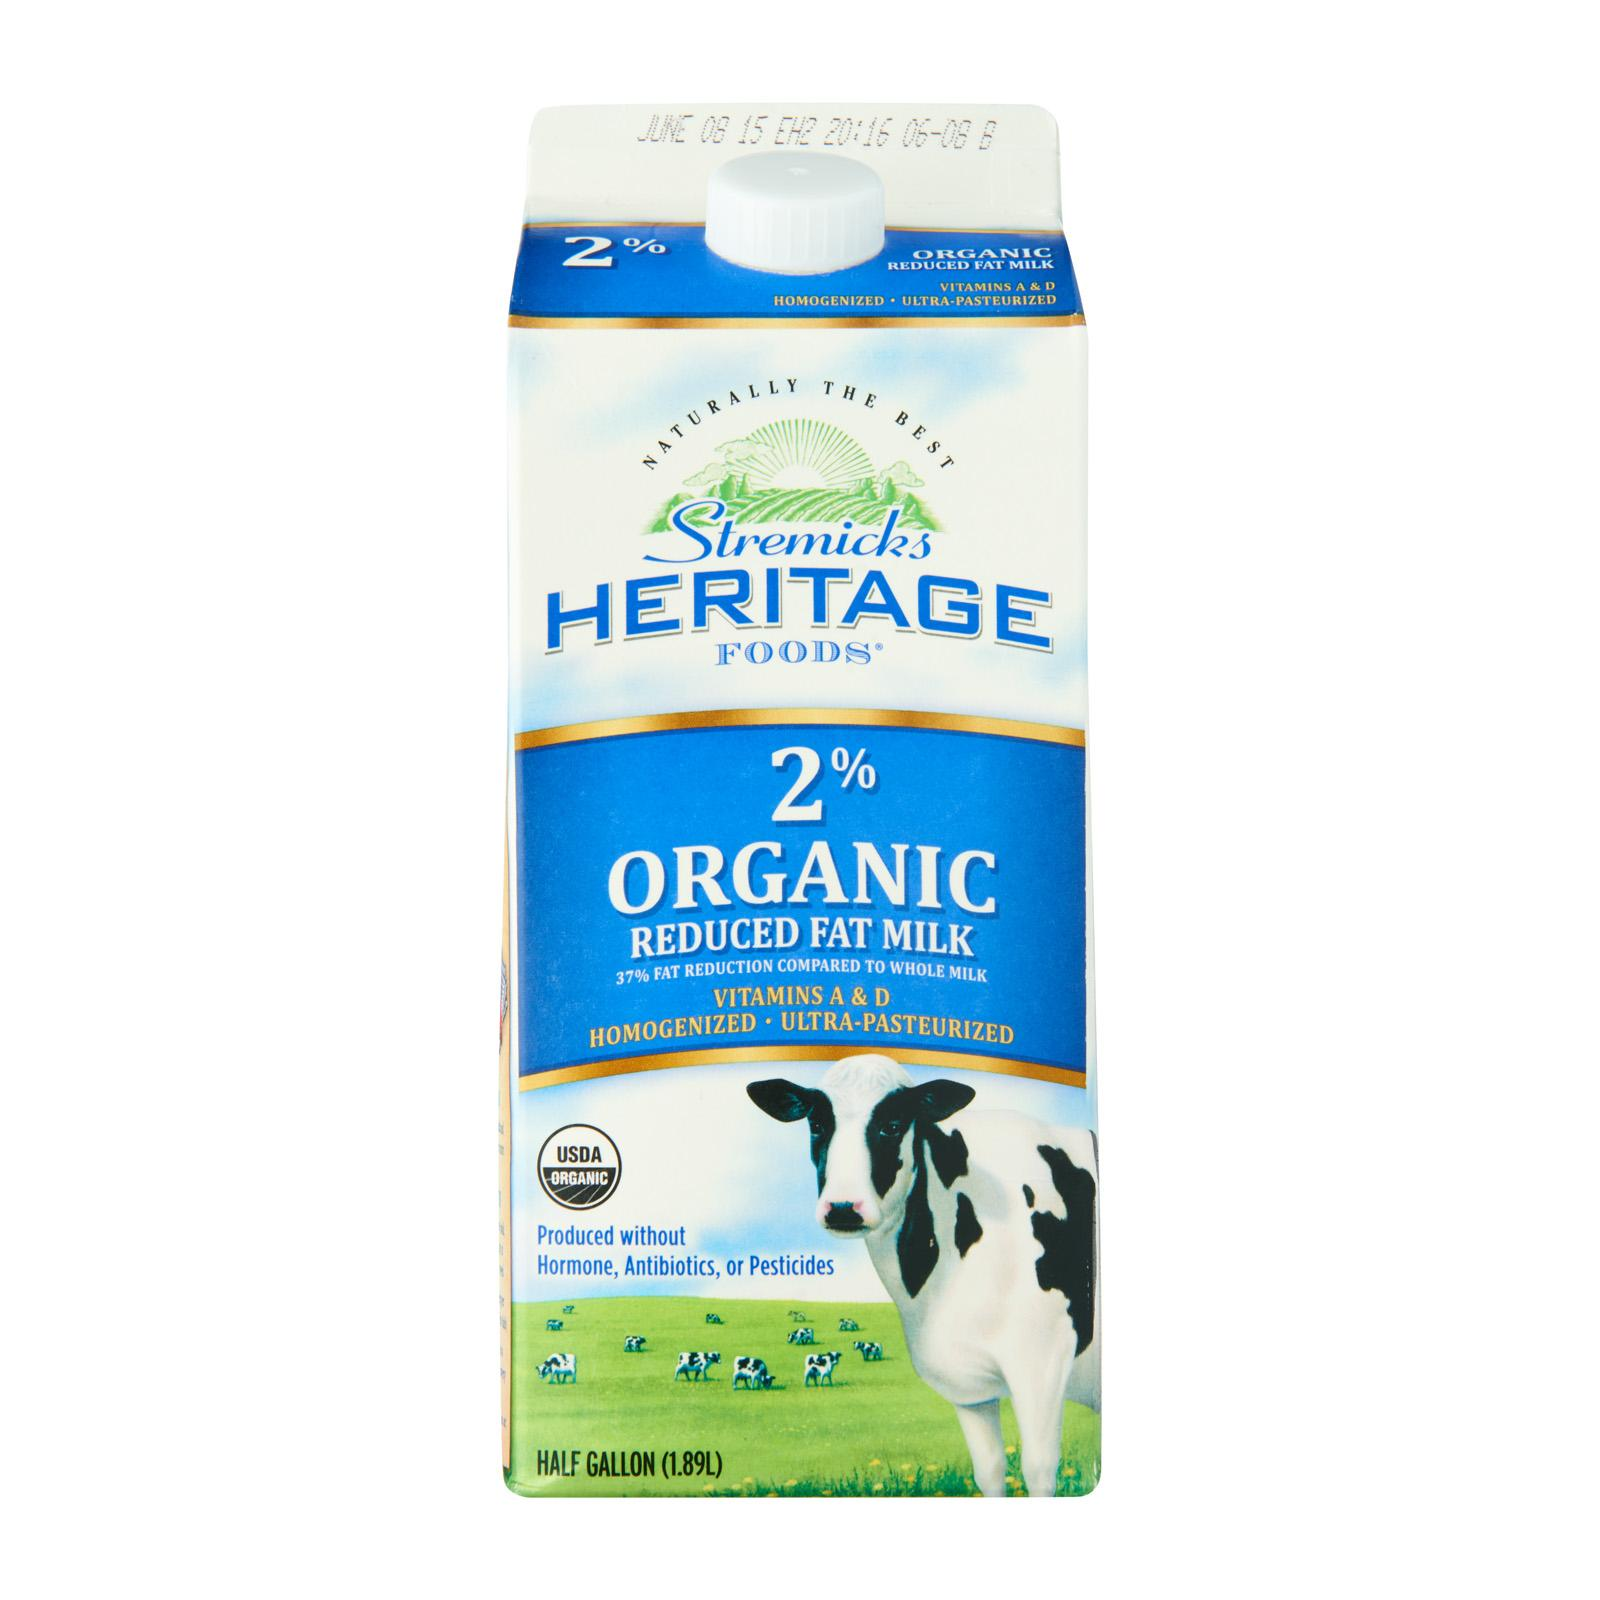 Stremicks Heritage Organic Milk Reduced Fat By Redmart.